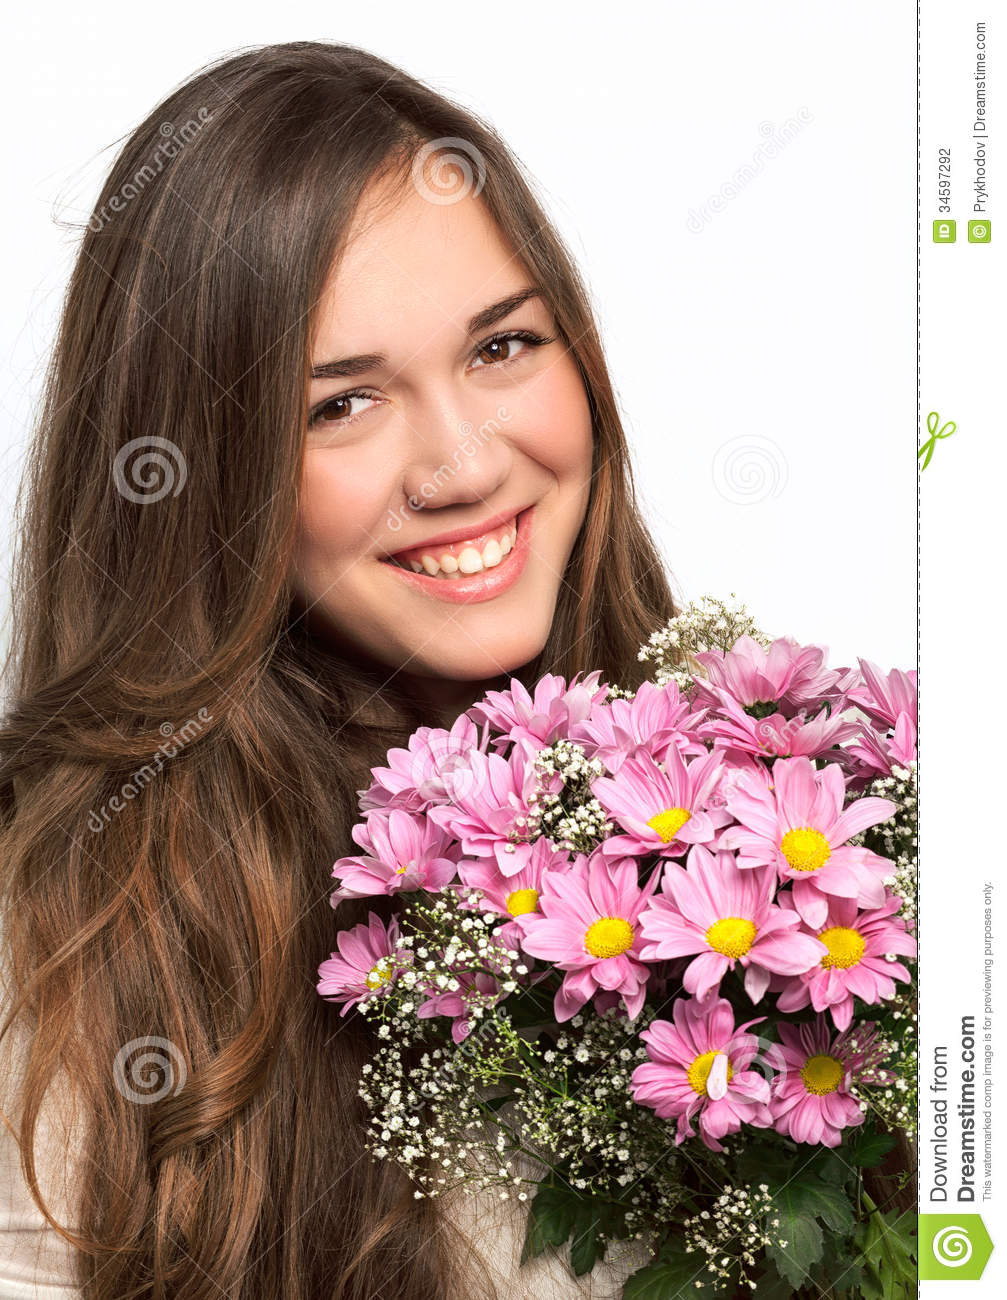 Portrait of a beautiful girl with long hair and a pink flowers